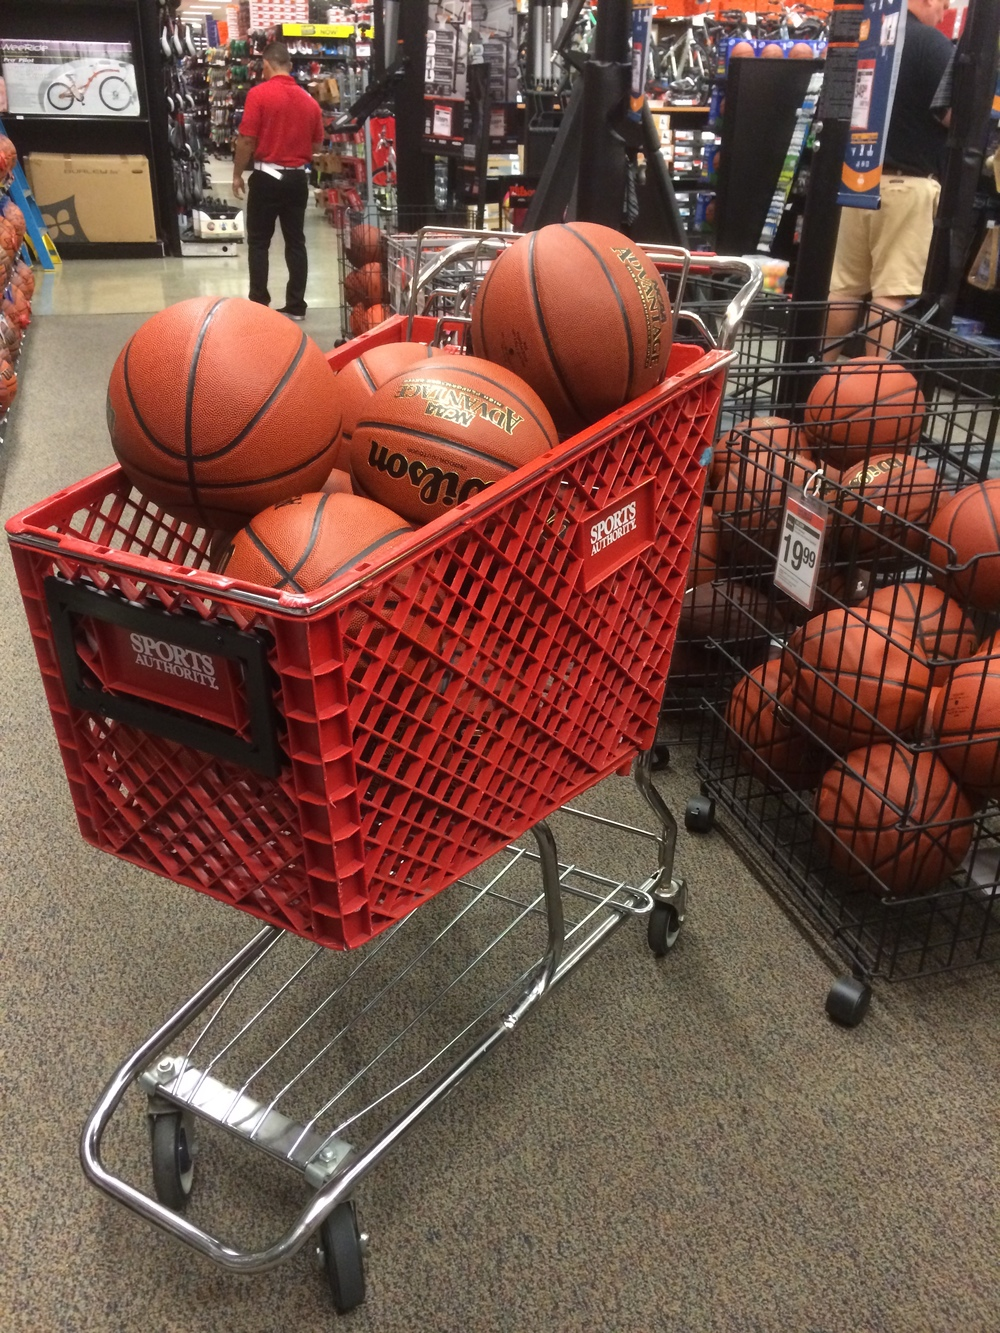 Buying Basketballs 2014 2.jpg